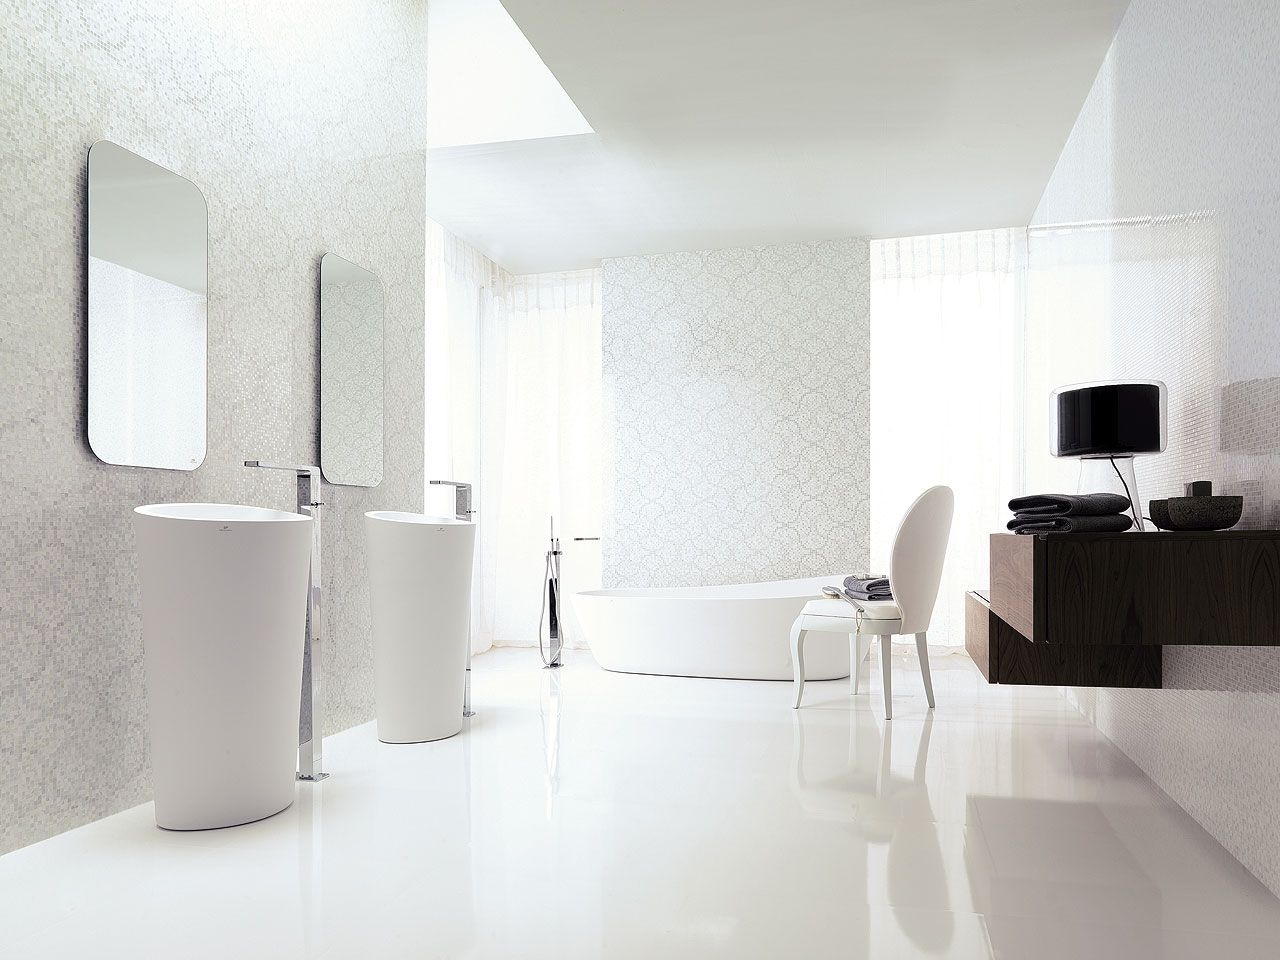 crystal floor white 59 6 x 59 6 cm porcelanosa bianco. Black Bedroom Furniture Sets. Home Design Ideas